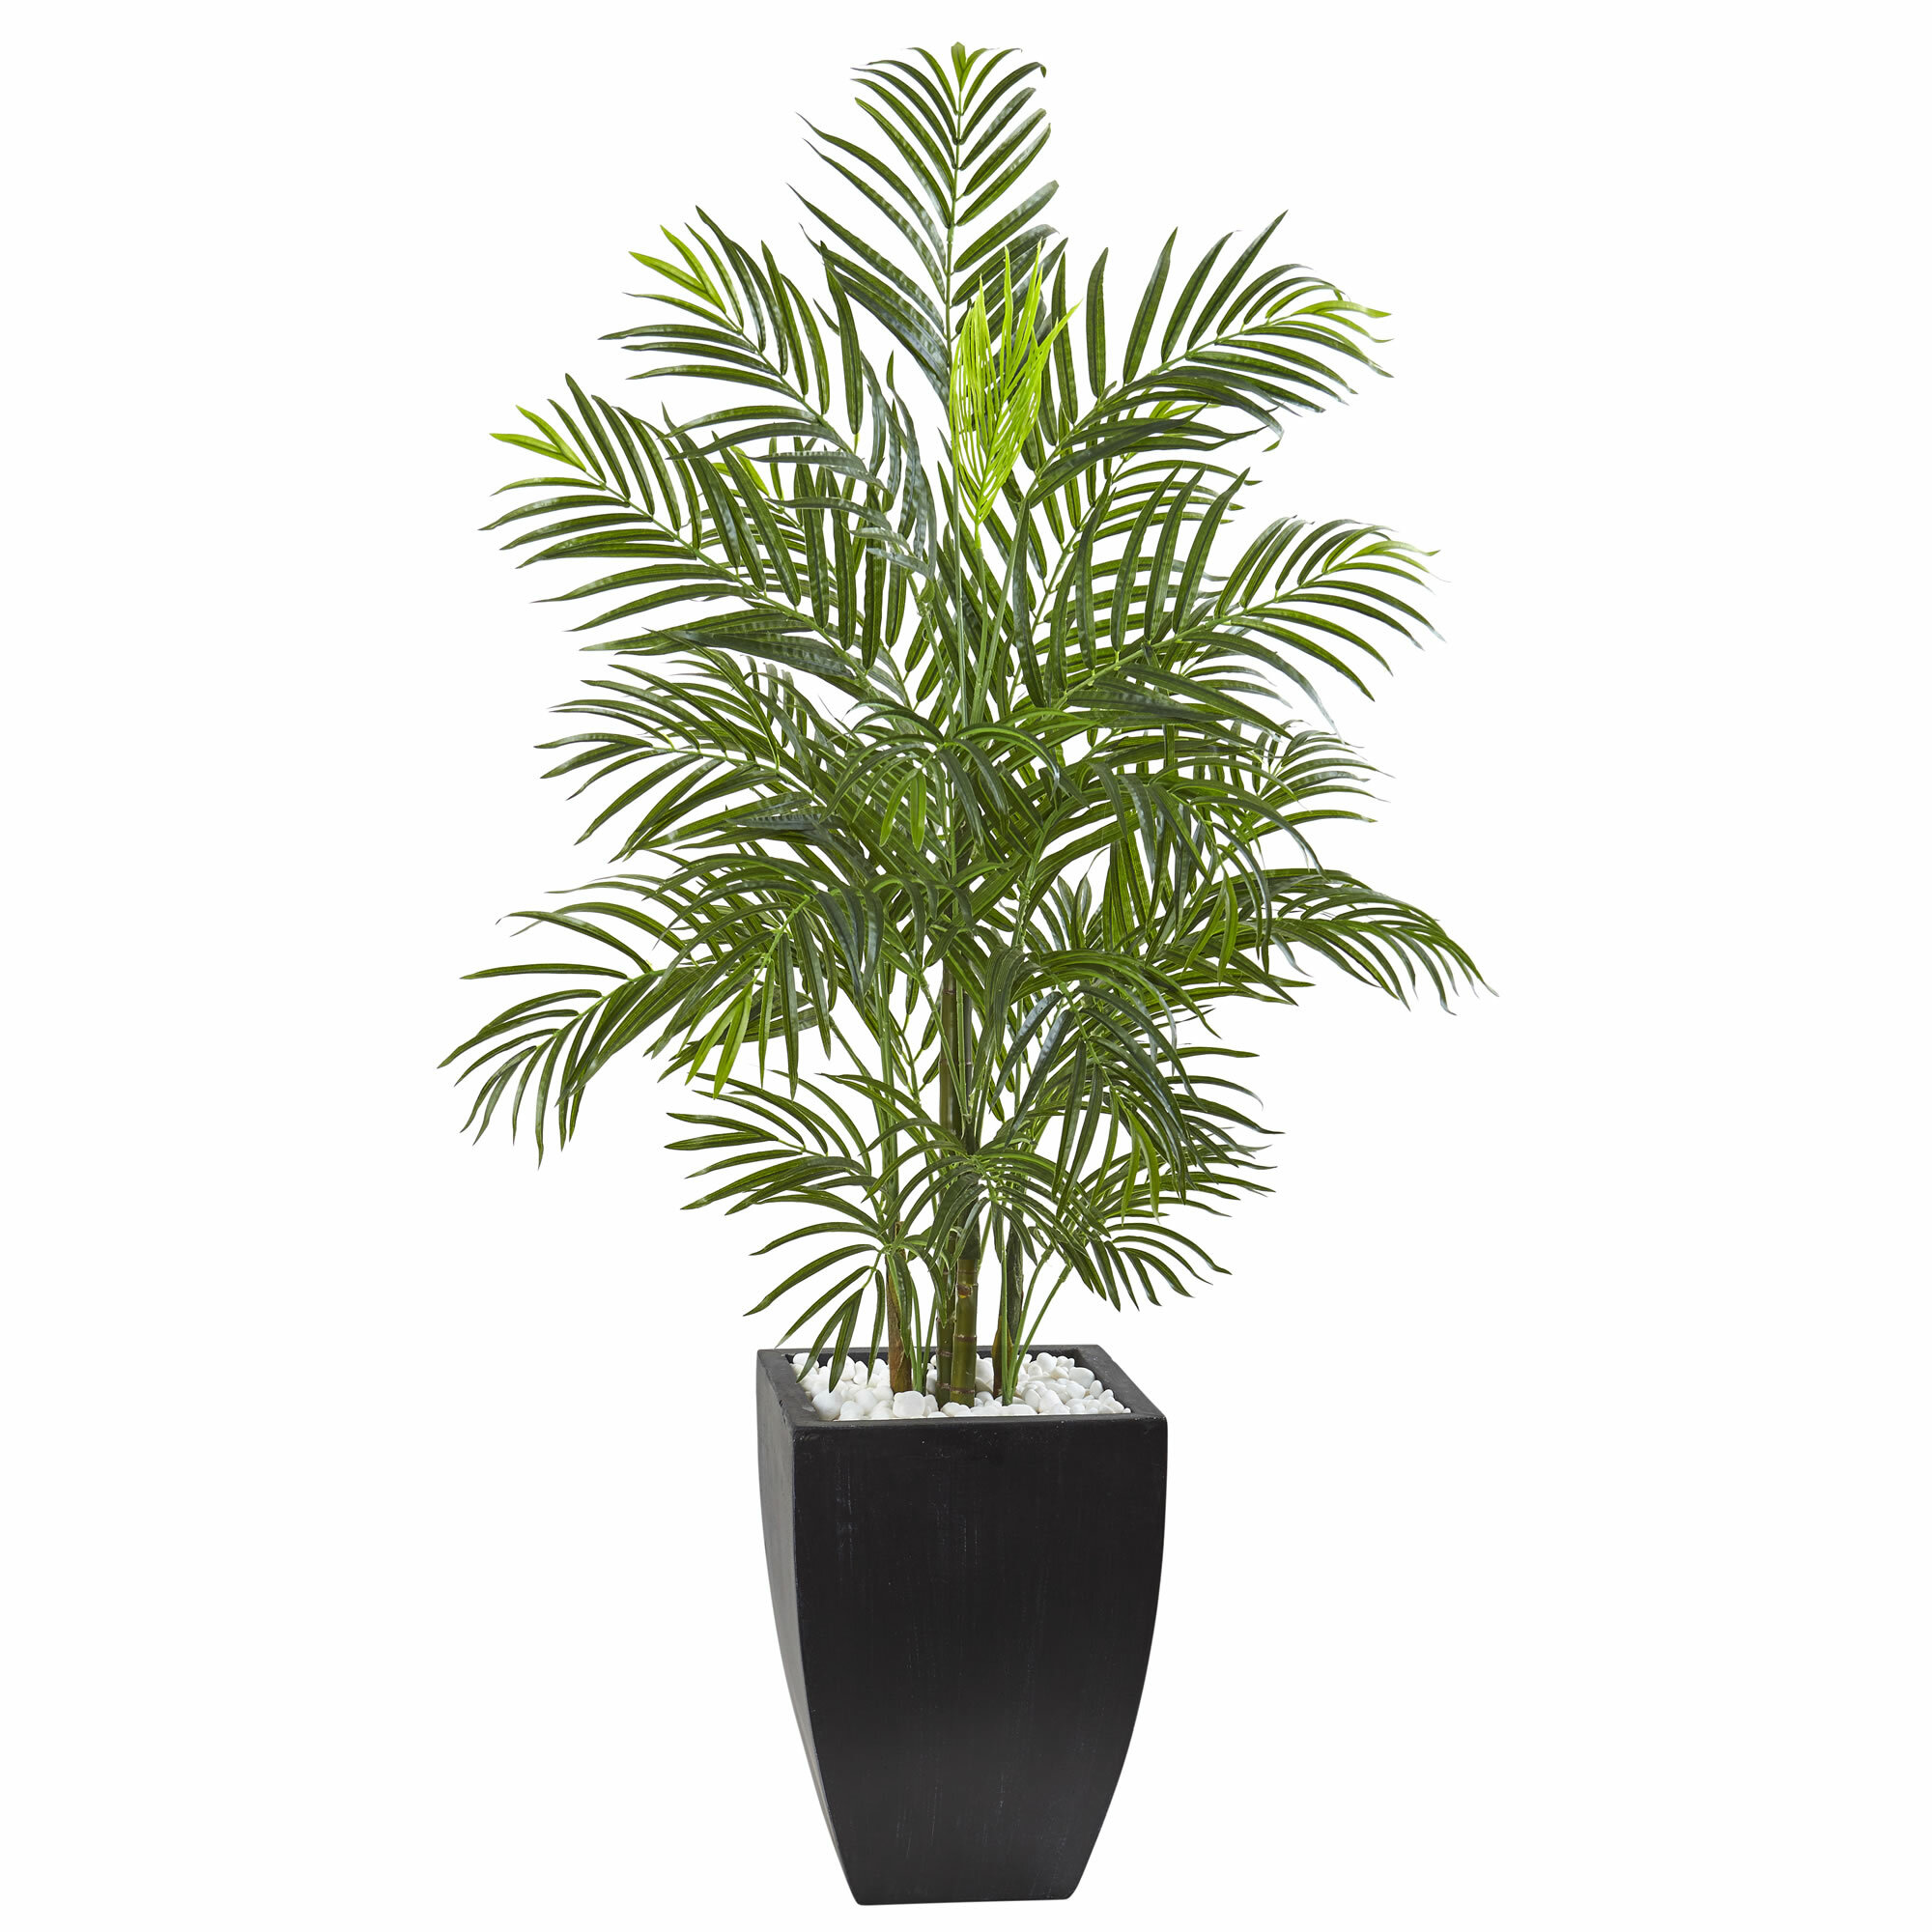 entracing palm tree type house plant.  Nearly Natural Areca Palm Tree in Planter Reviews Wayfair